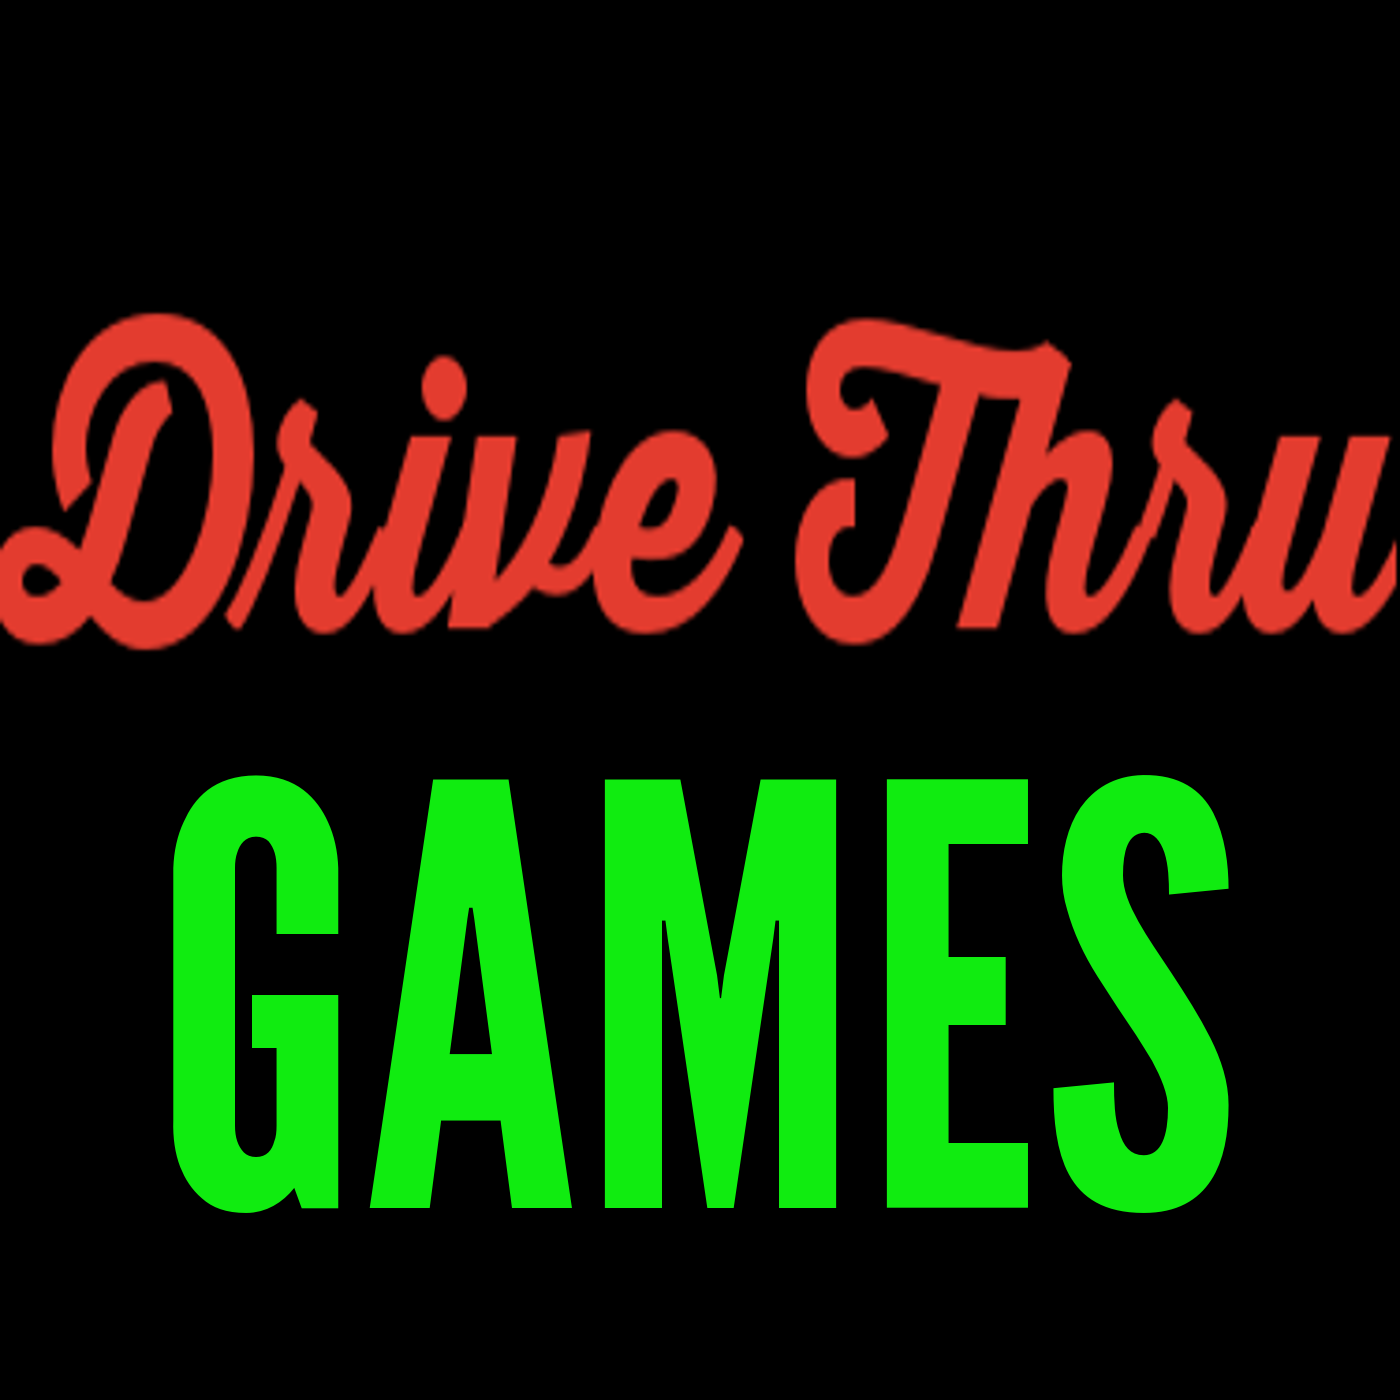 Top 5 Games of Summer 2020 - Joel Eddy Drive Thru Games